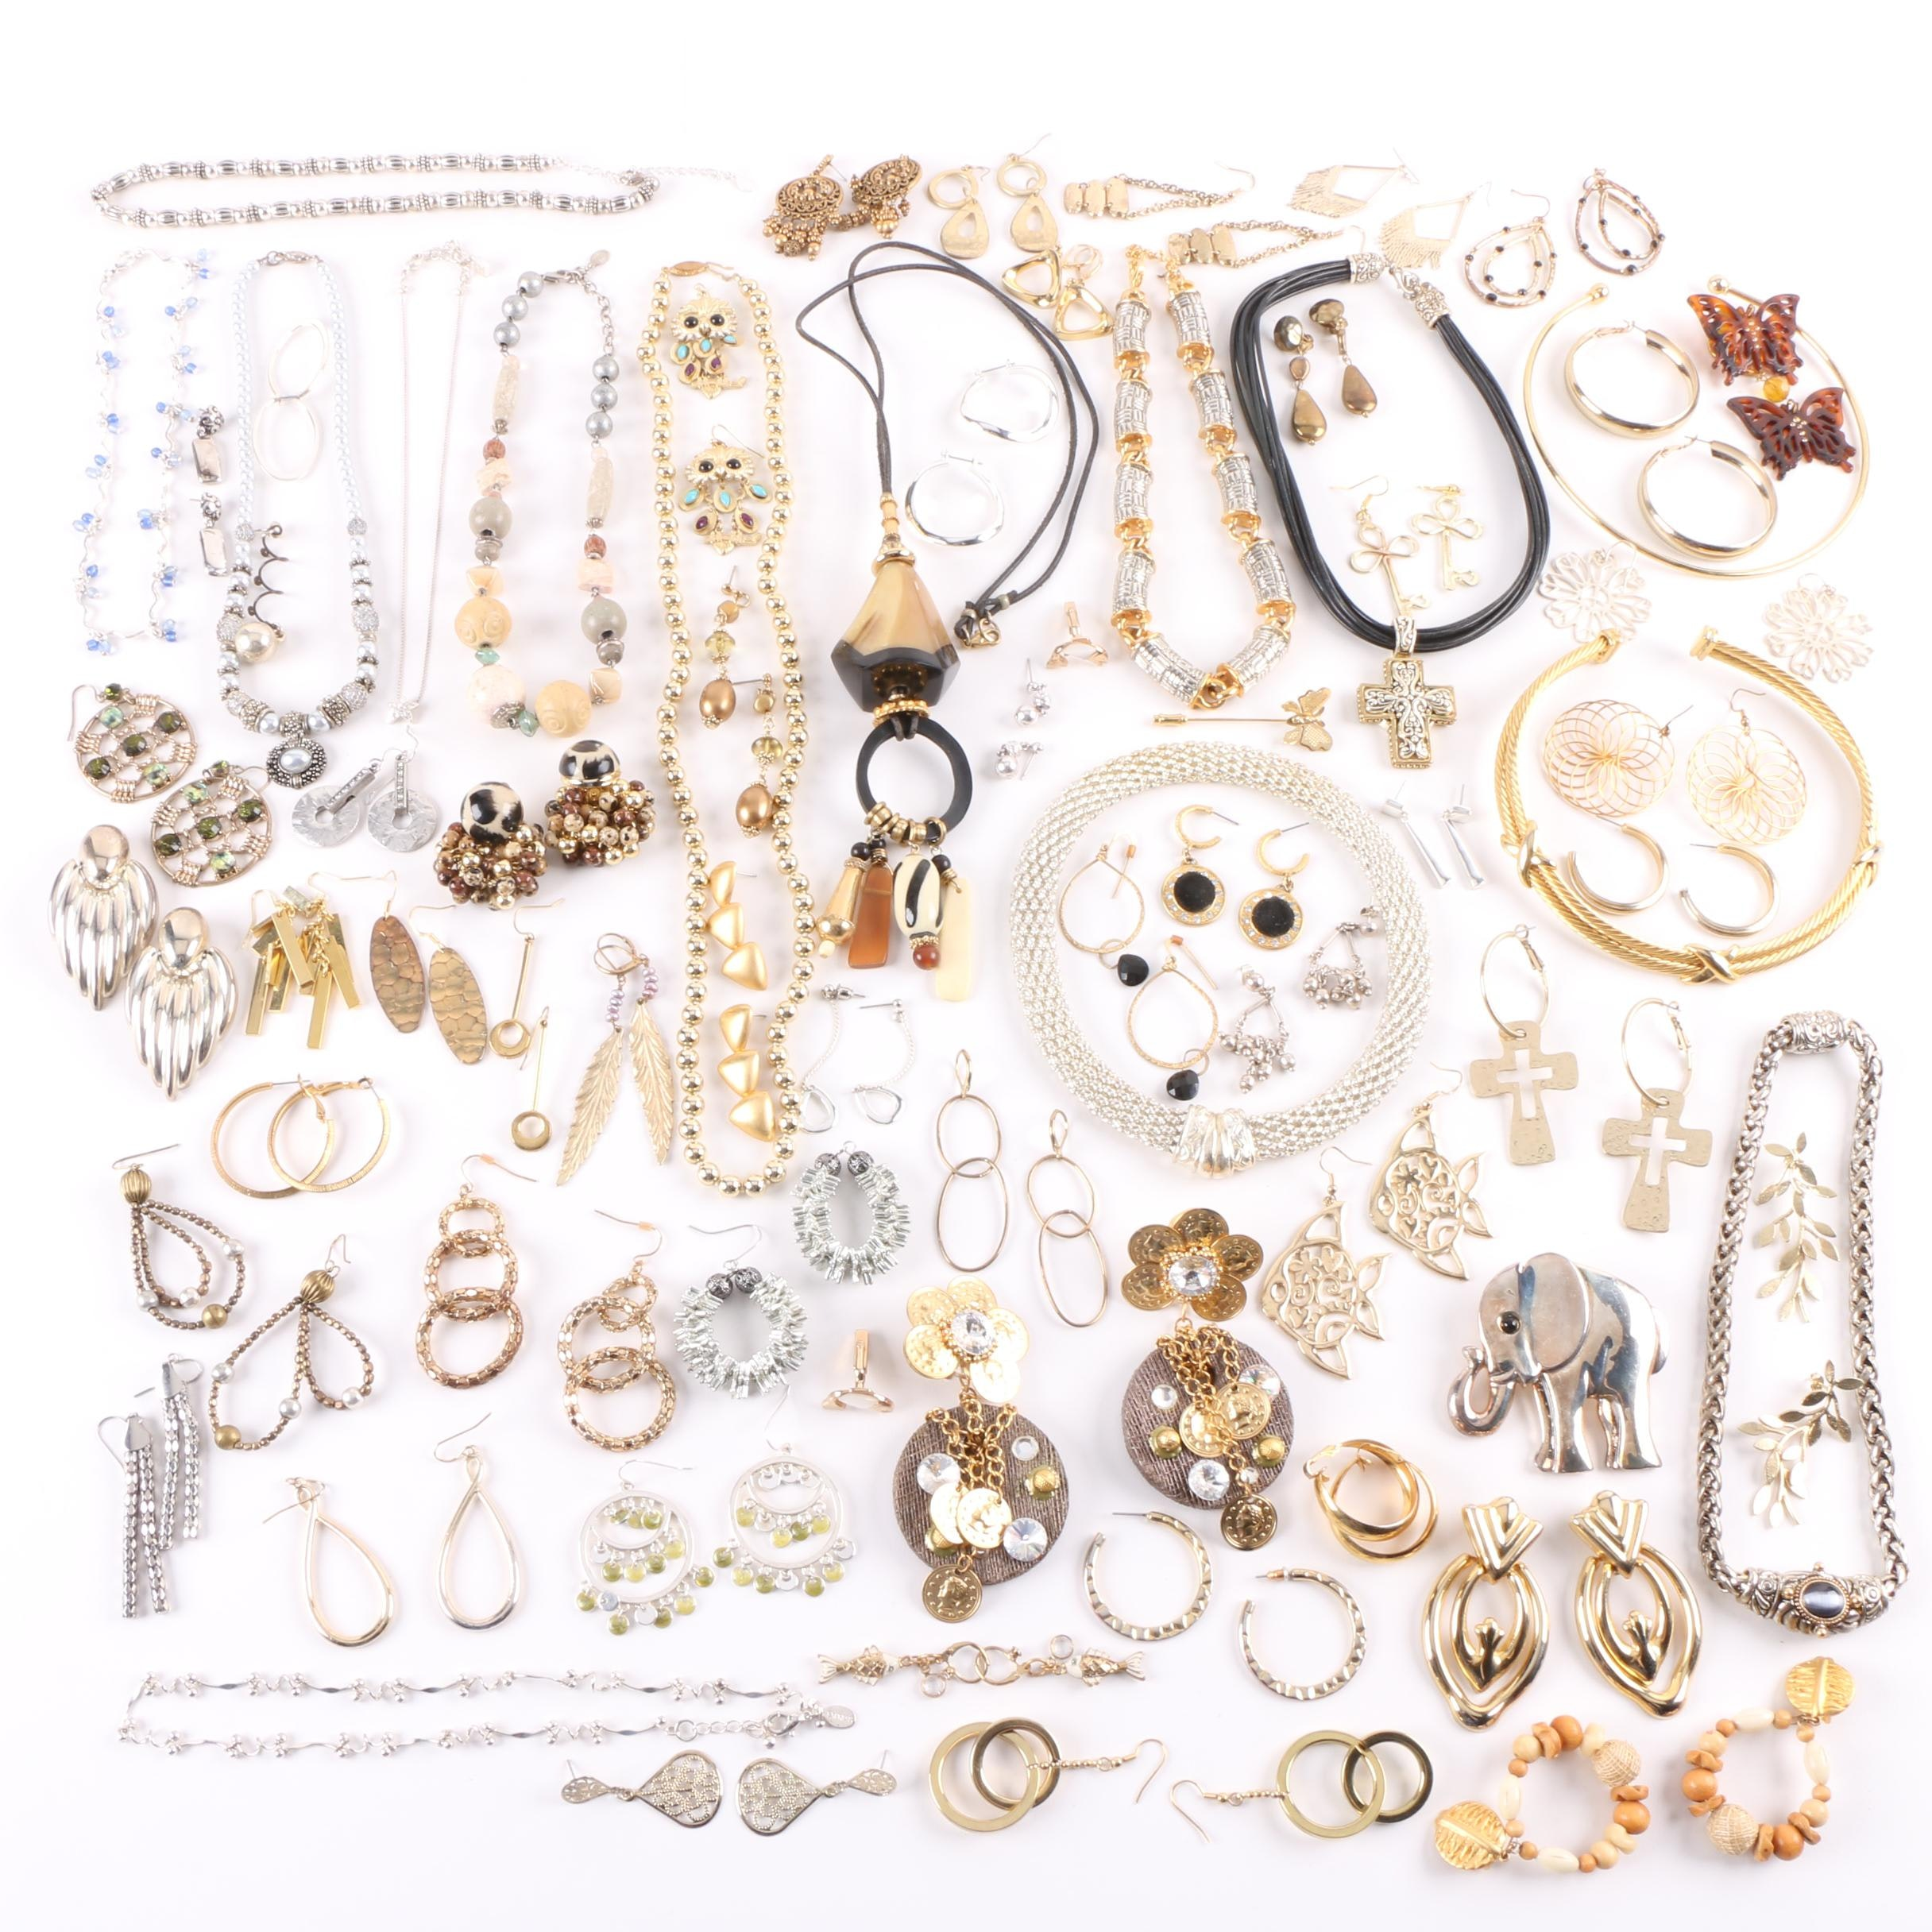 Gold Toned Costume Jewelry Selection Including Horn and Imitation Pearl